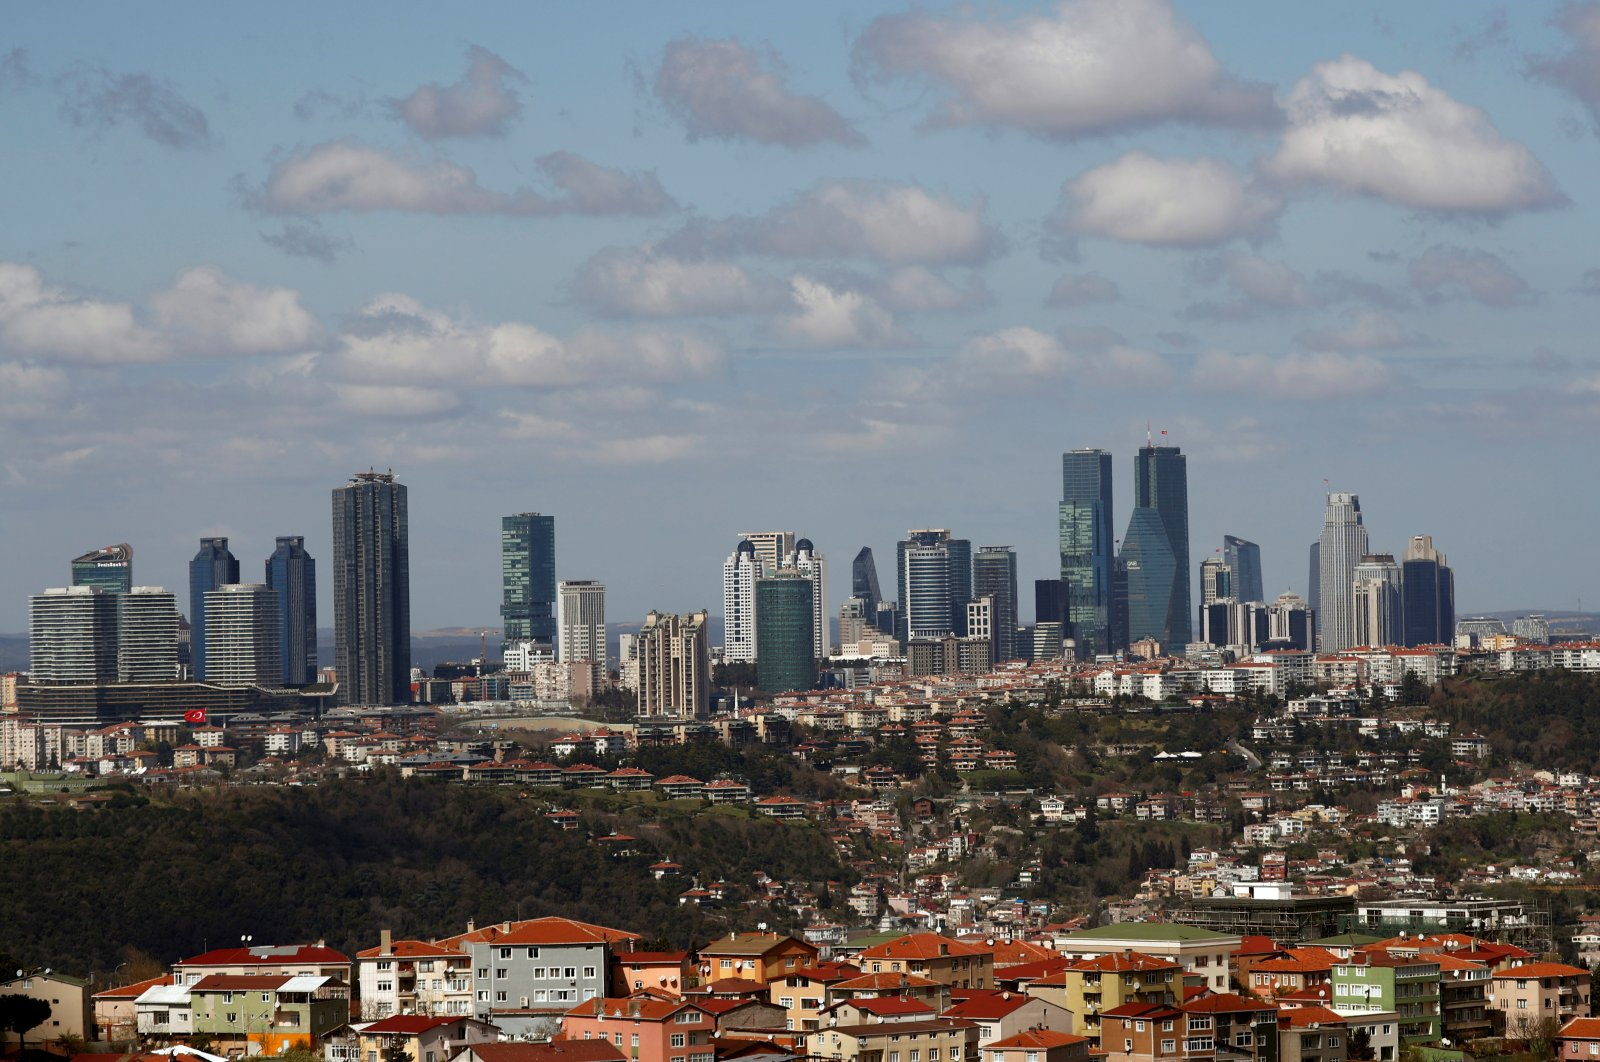 Skyscrapers are seen in the business and financial district of Levent, the location of leading banks' and companies' headquarters, in Istanbul, Turkey, March 29, 2019. (Reuters Photo)